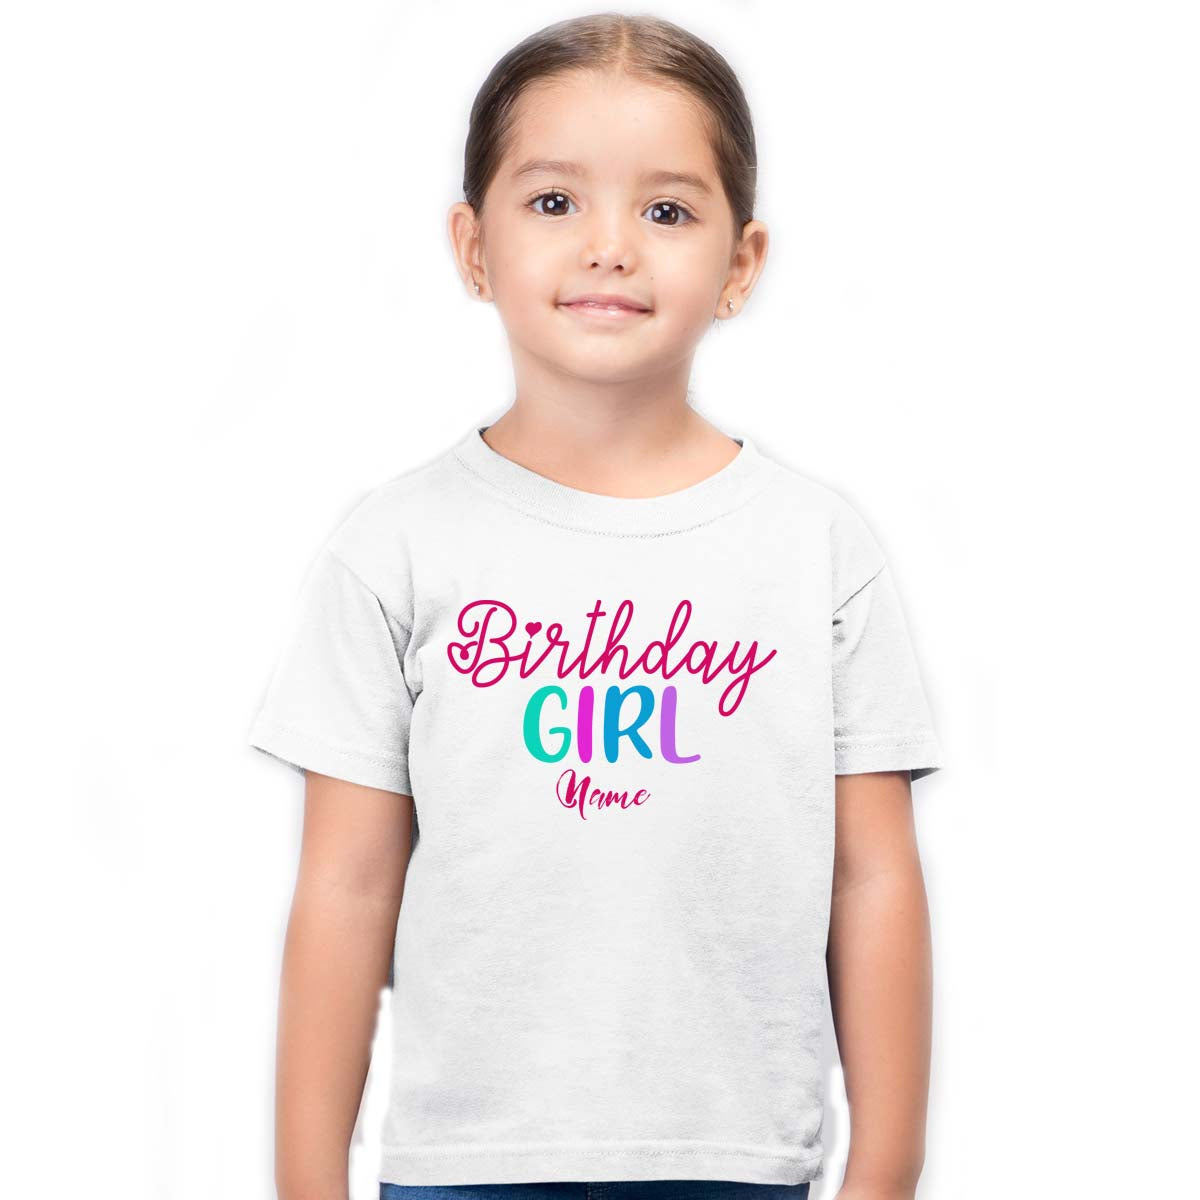 Sprinklecart Custom Name and Age Printed Birthday Girl Printed Poly-Cotton Kids T Shirt Wear (White)